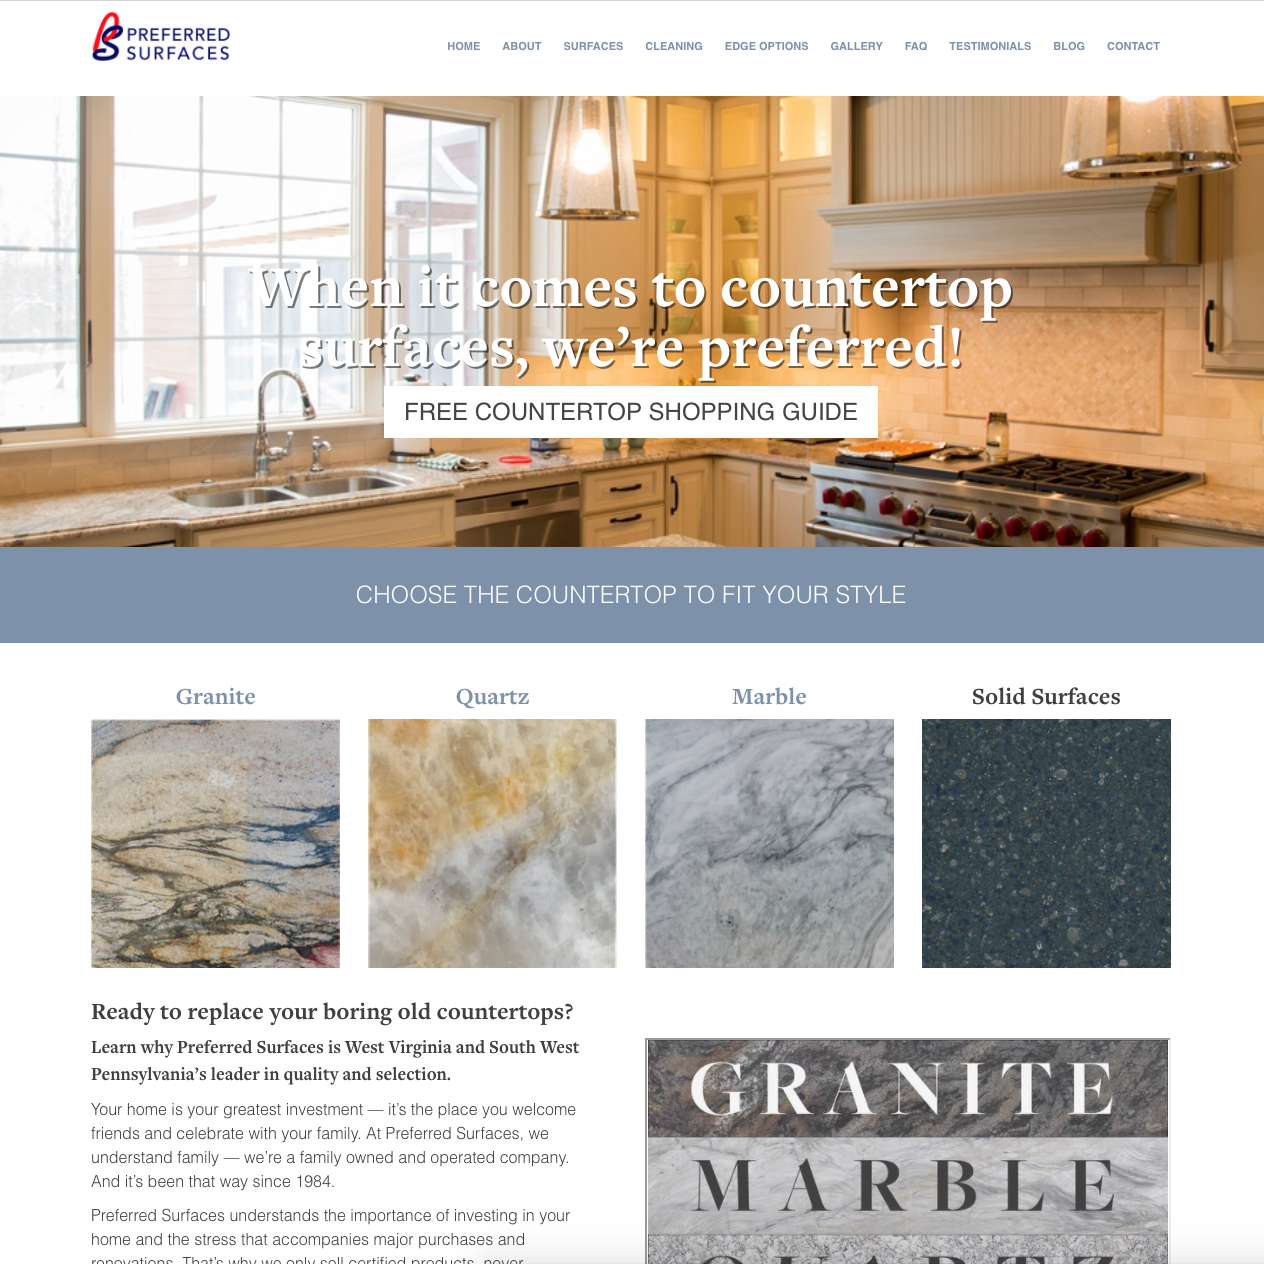 Preferred Surfaces Website Design